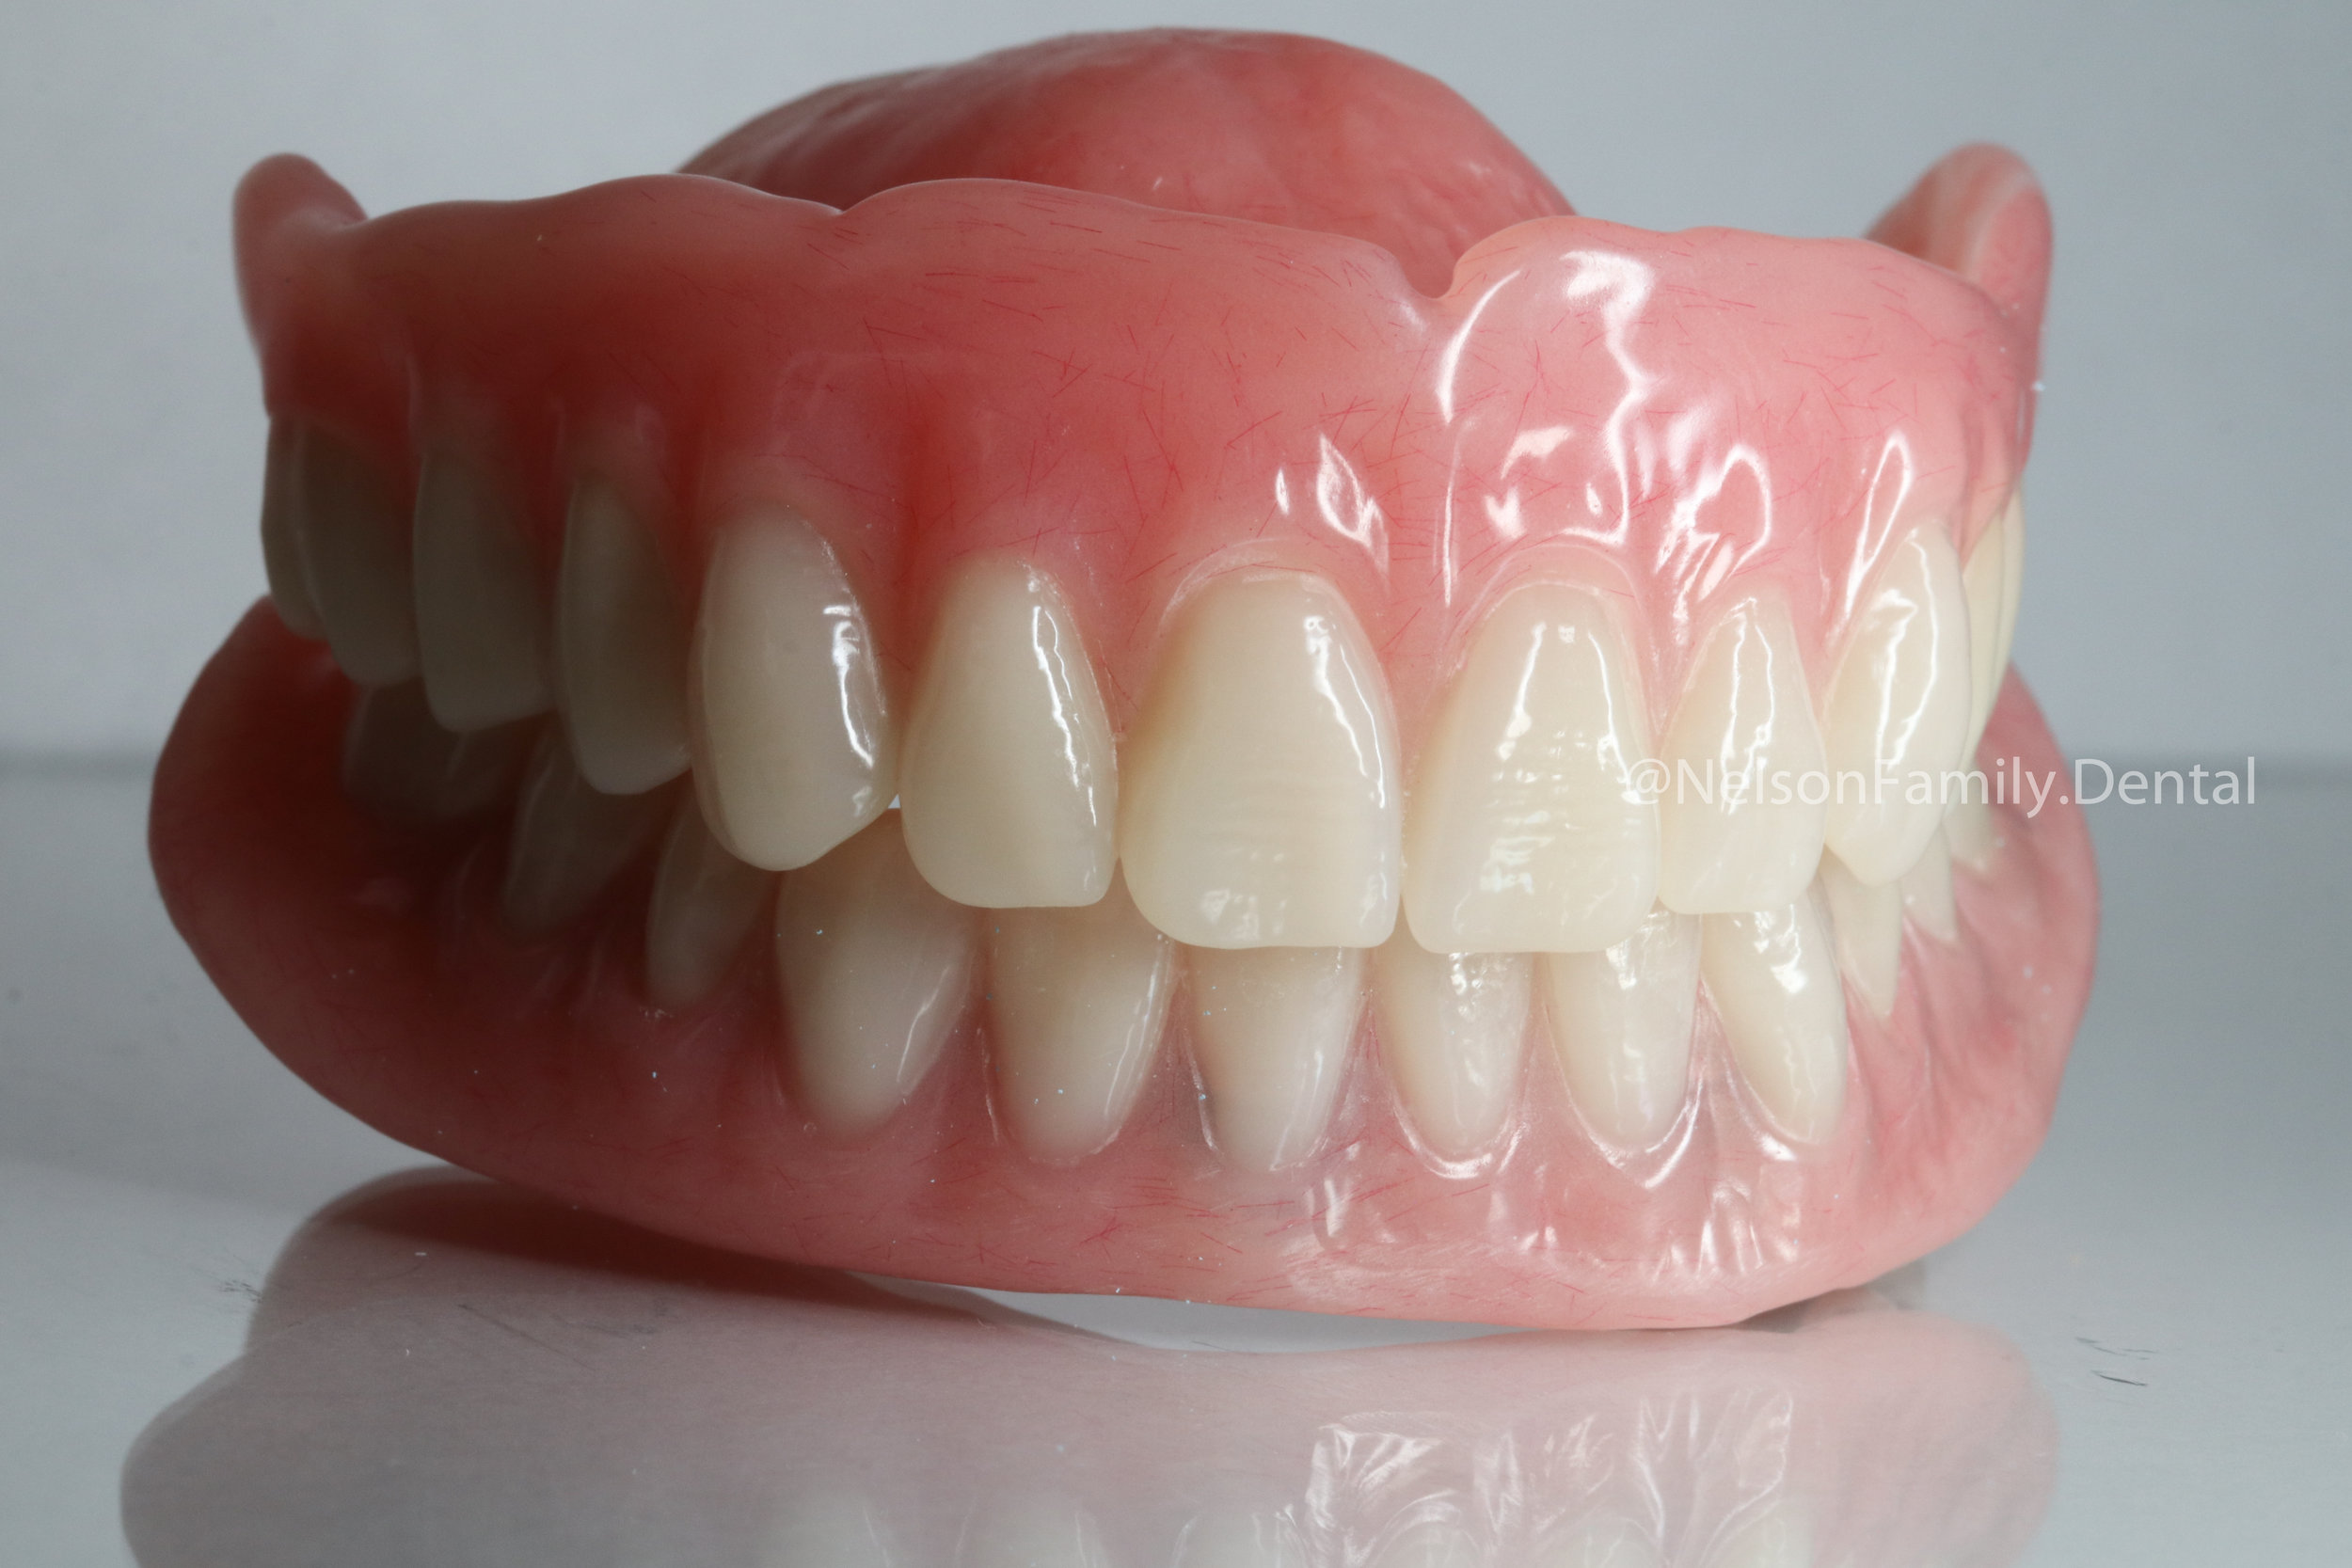 Implant-Denture-Vita-Teeth-5887.jpg